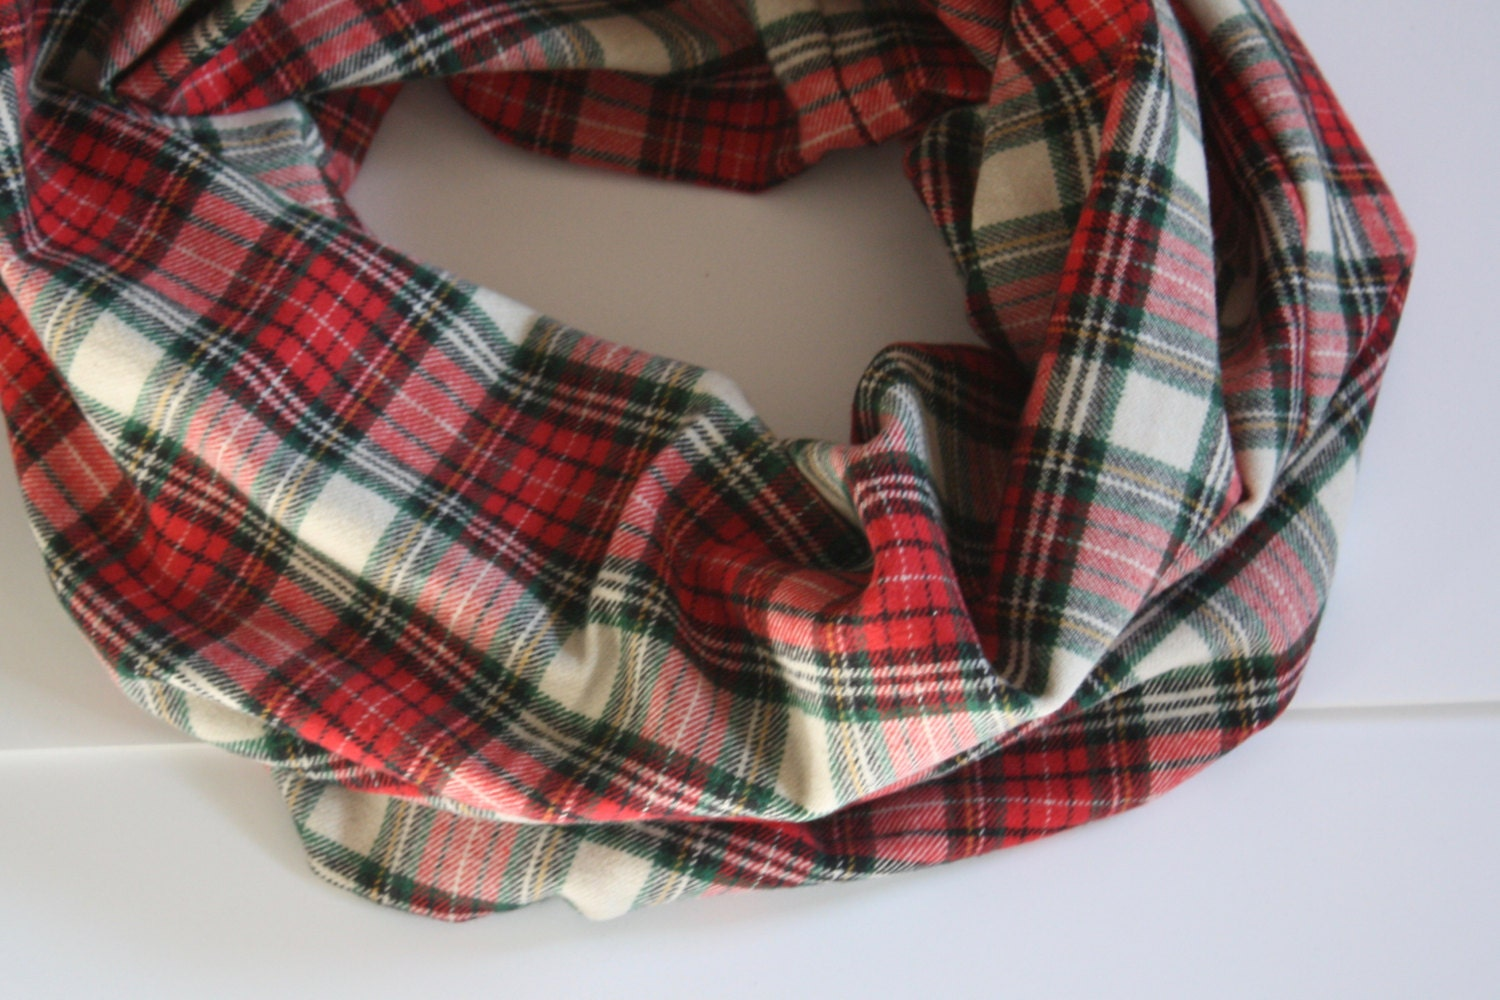 red and green plaid scarf flannel neck warmer womens winter scarf red plaid - Christmas Plaid Scarf